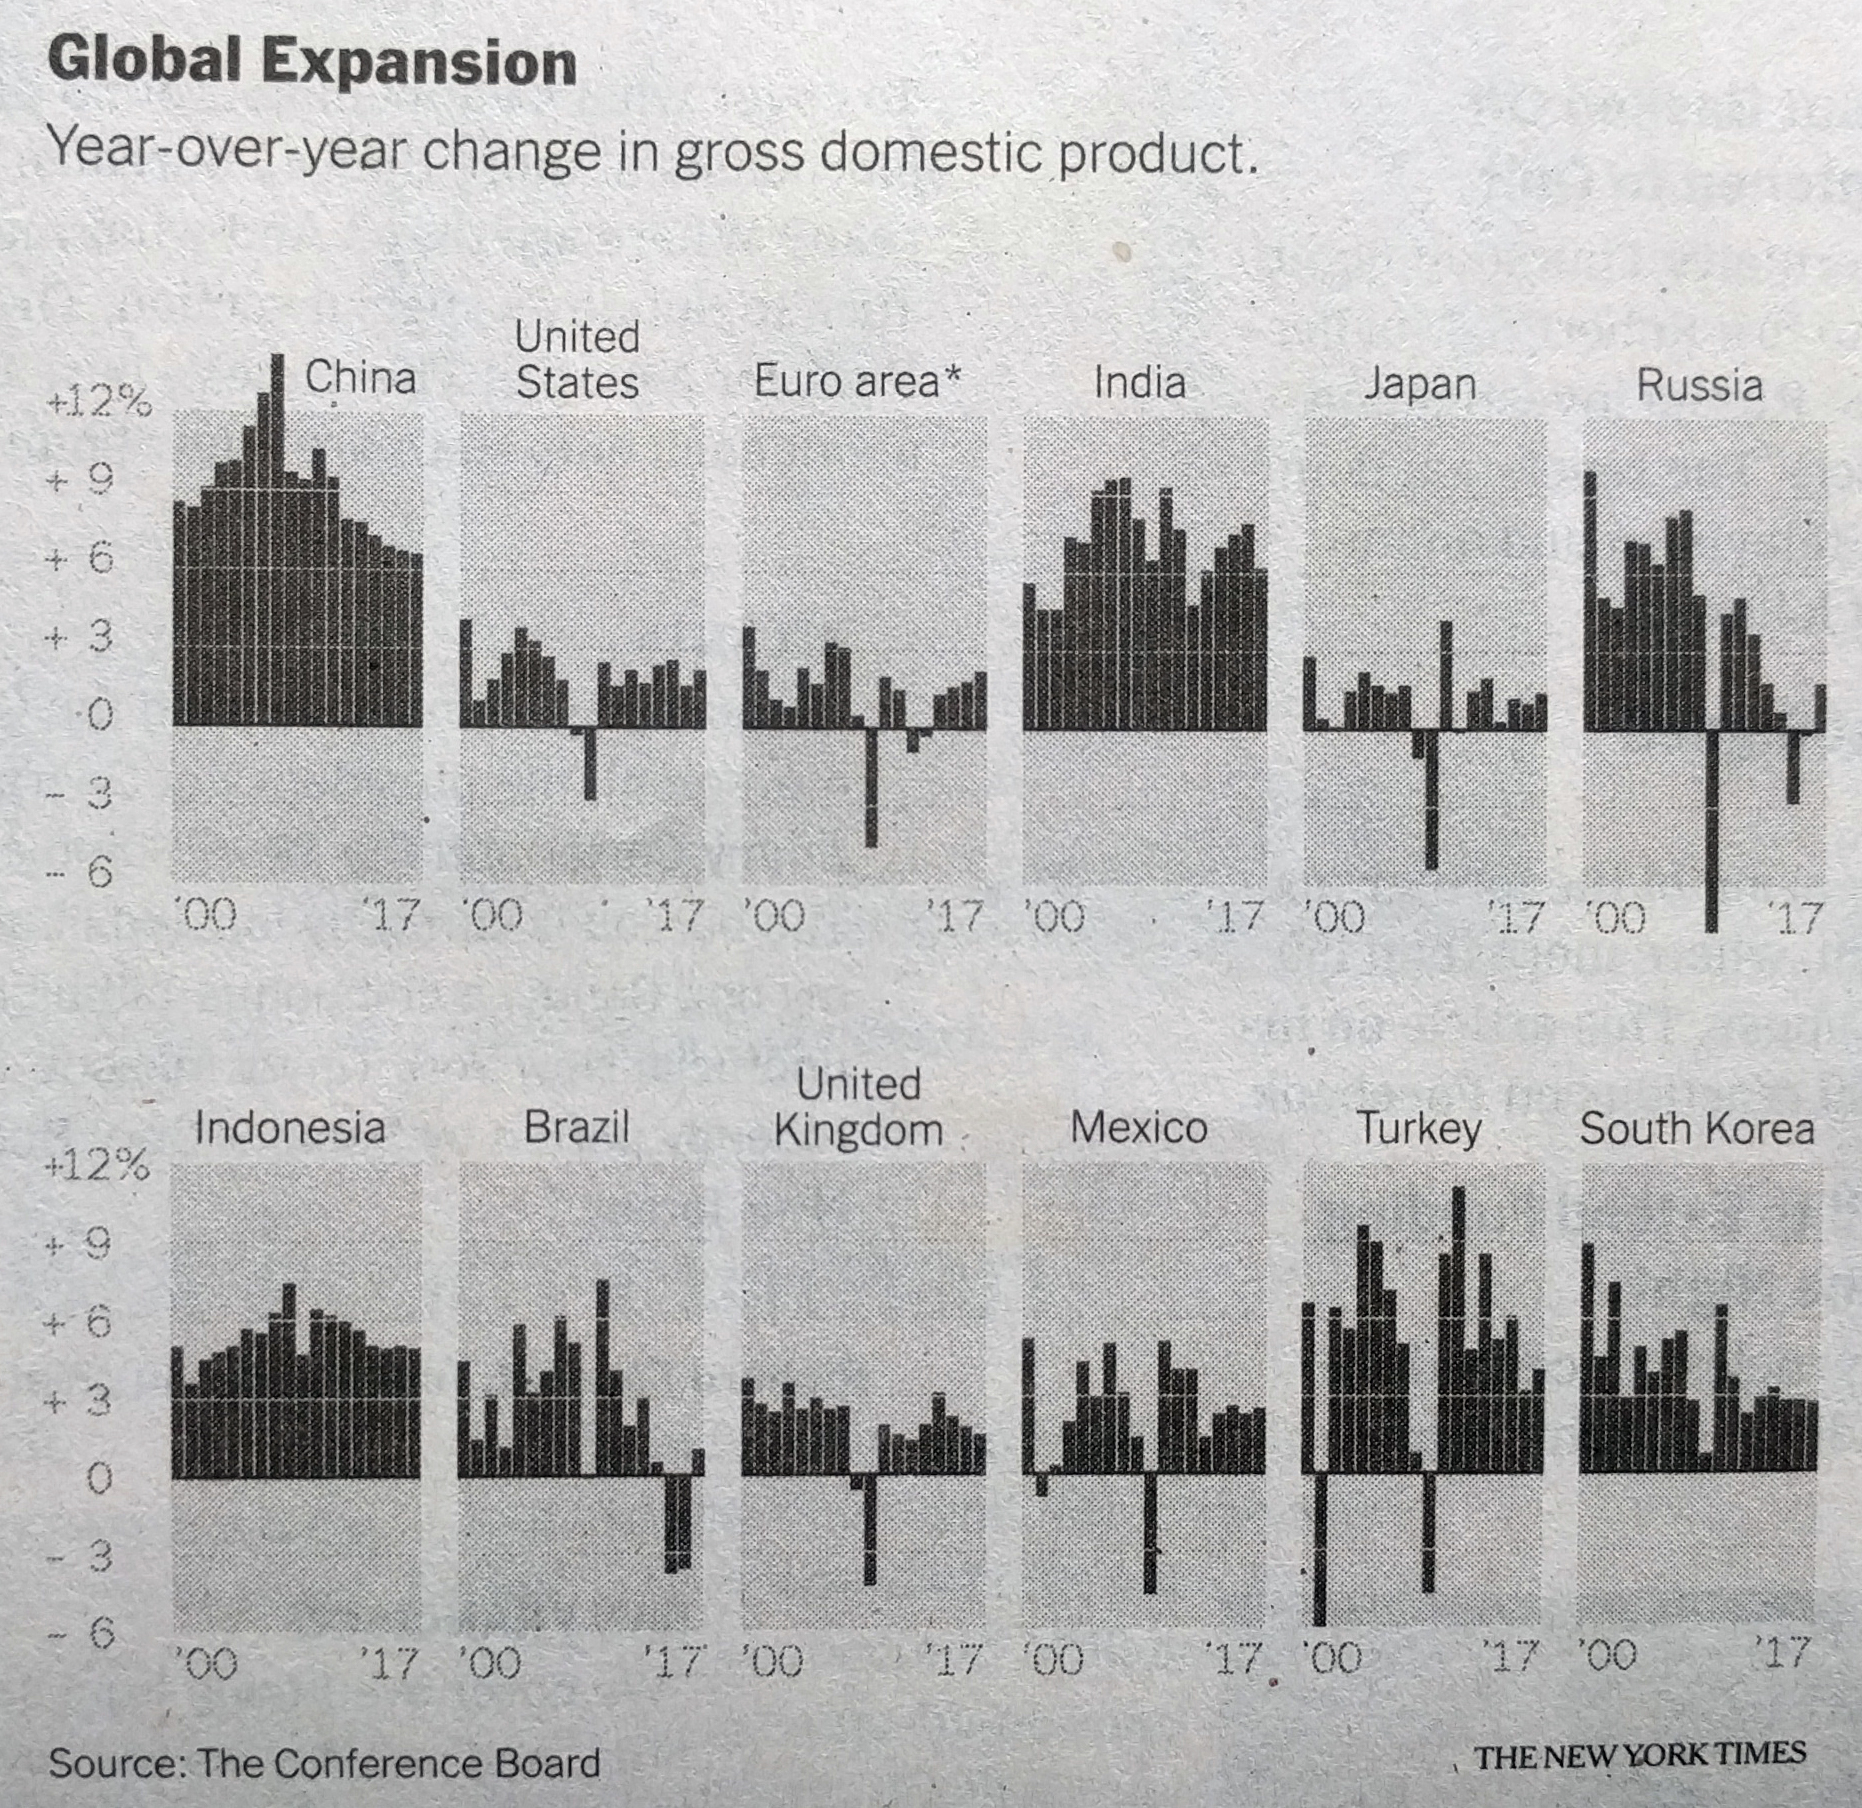 The world's leading economies, on their own